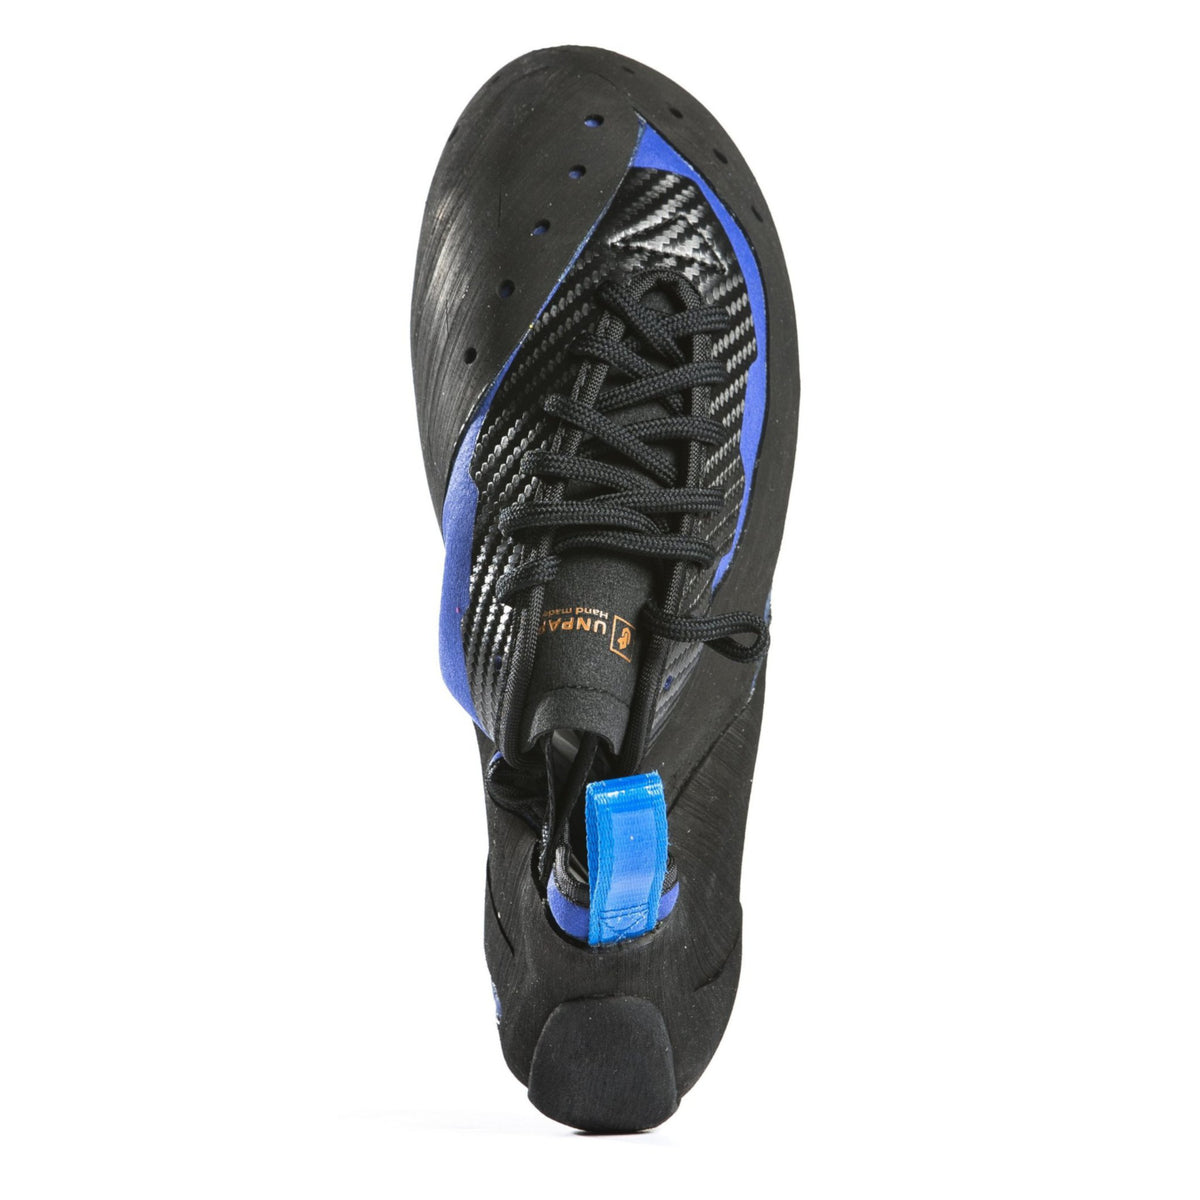 Unparallel Sirius Lace climbing shoe, view from above showing lace design detail